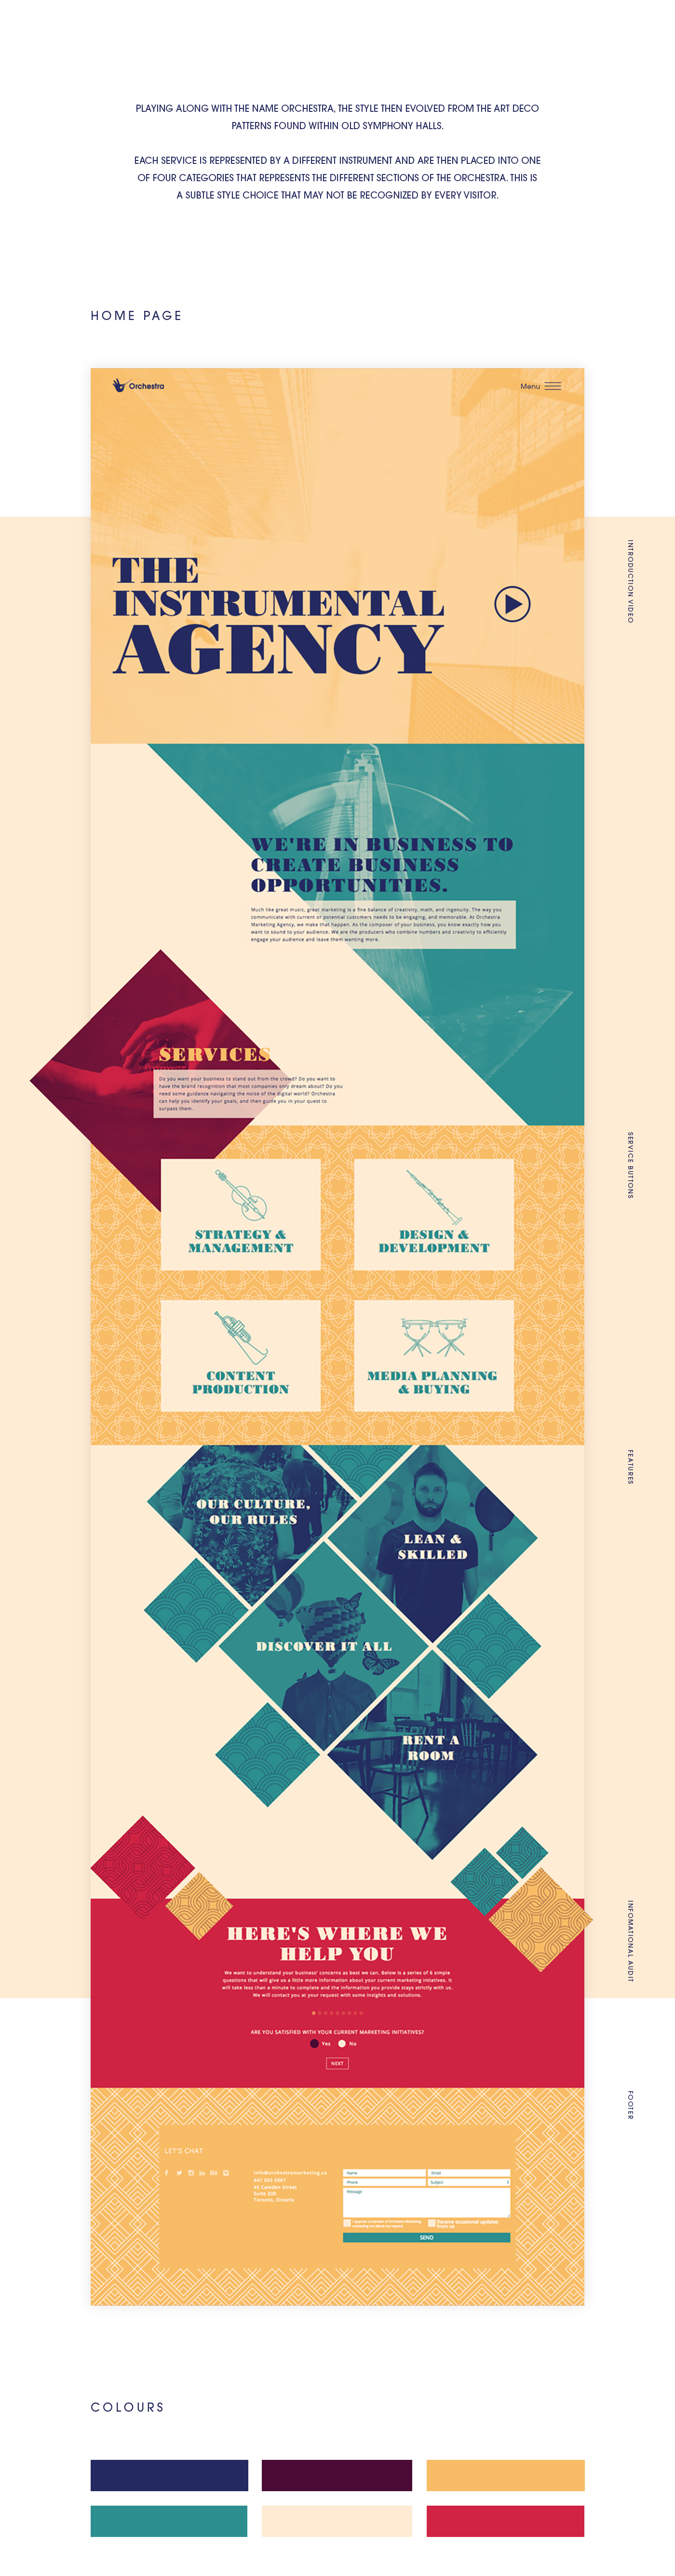 orchestra redesign Website instruments edgy morden abstract geometric agency Agency website